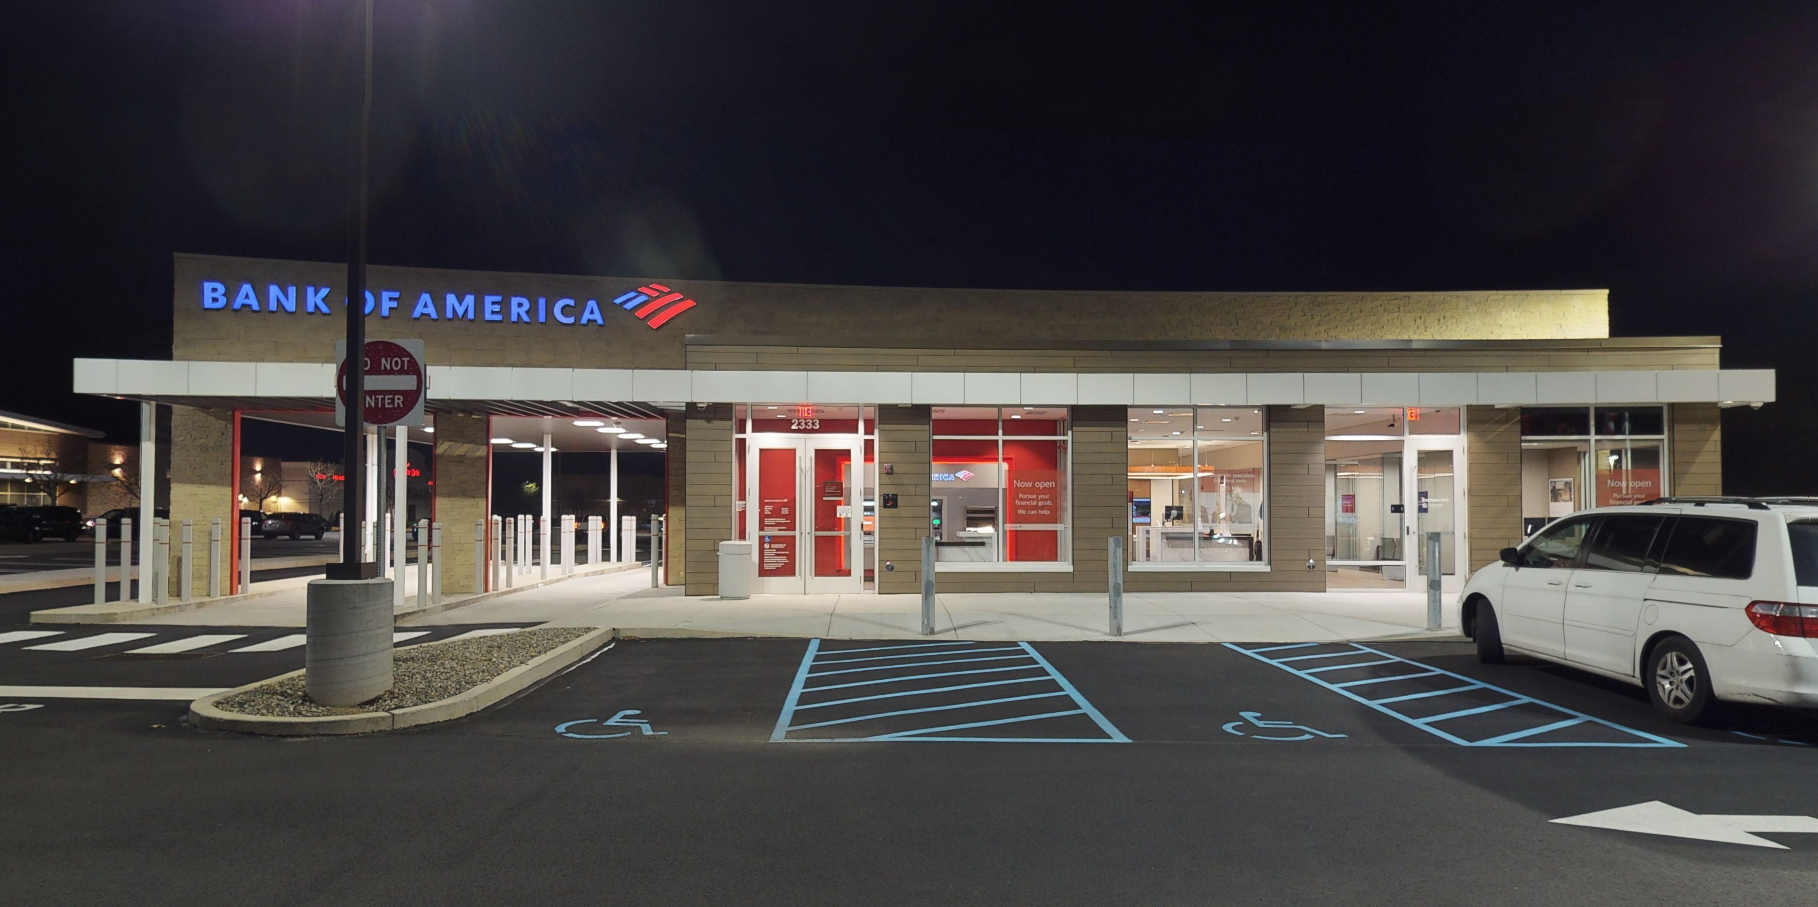 Bank of America financial center with drive-thru ATM   2333 E Lincoln Hwy, Langhorne, PA 19047